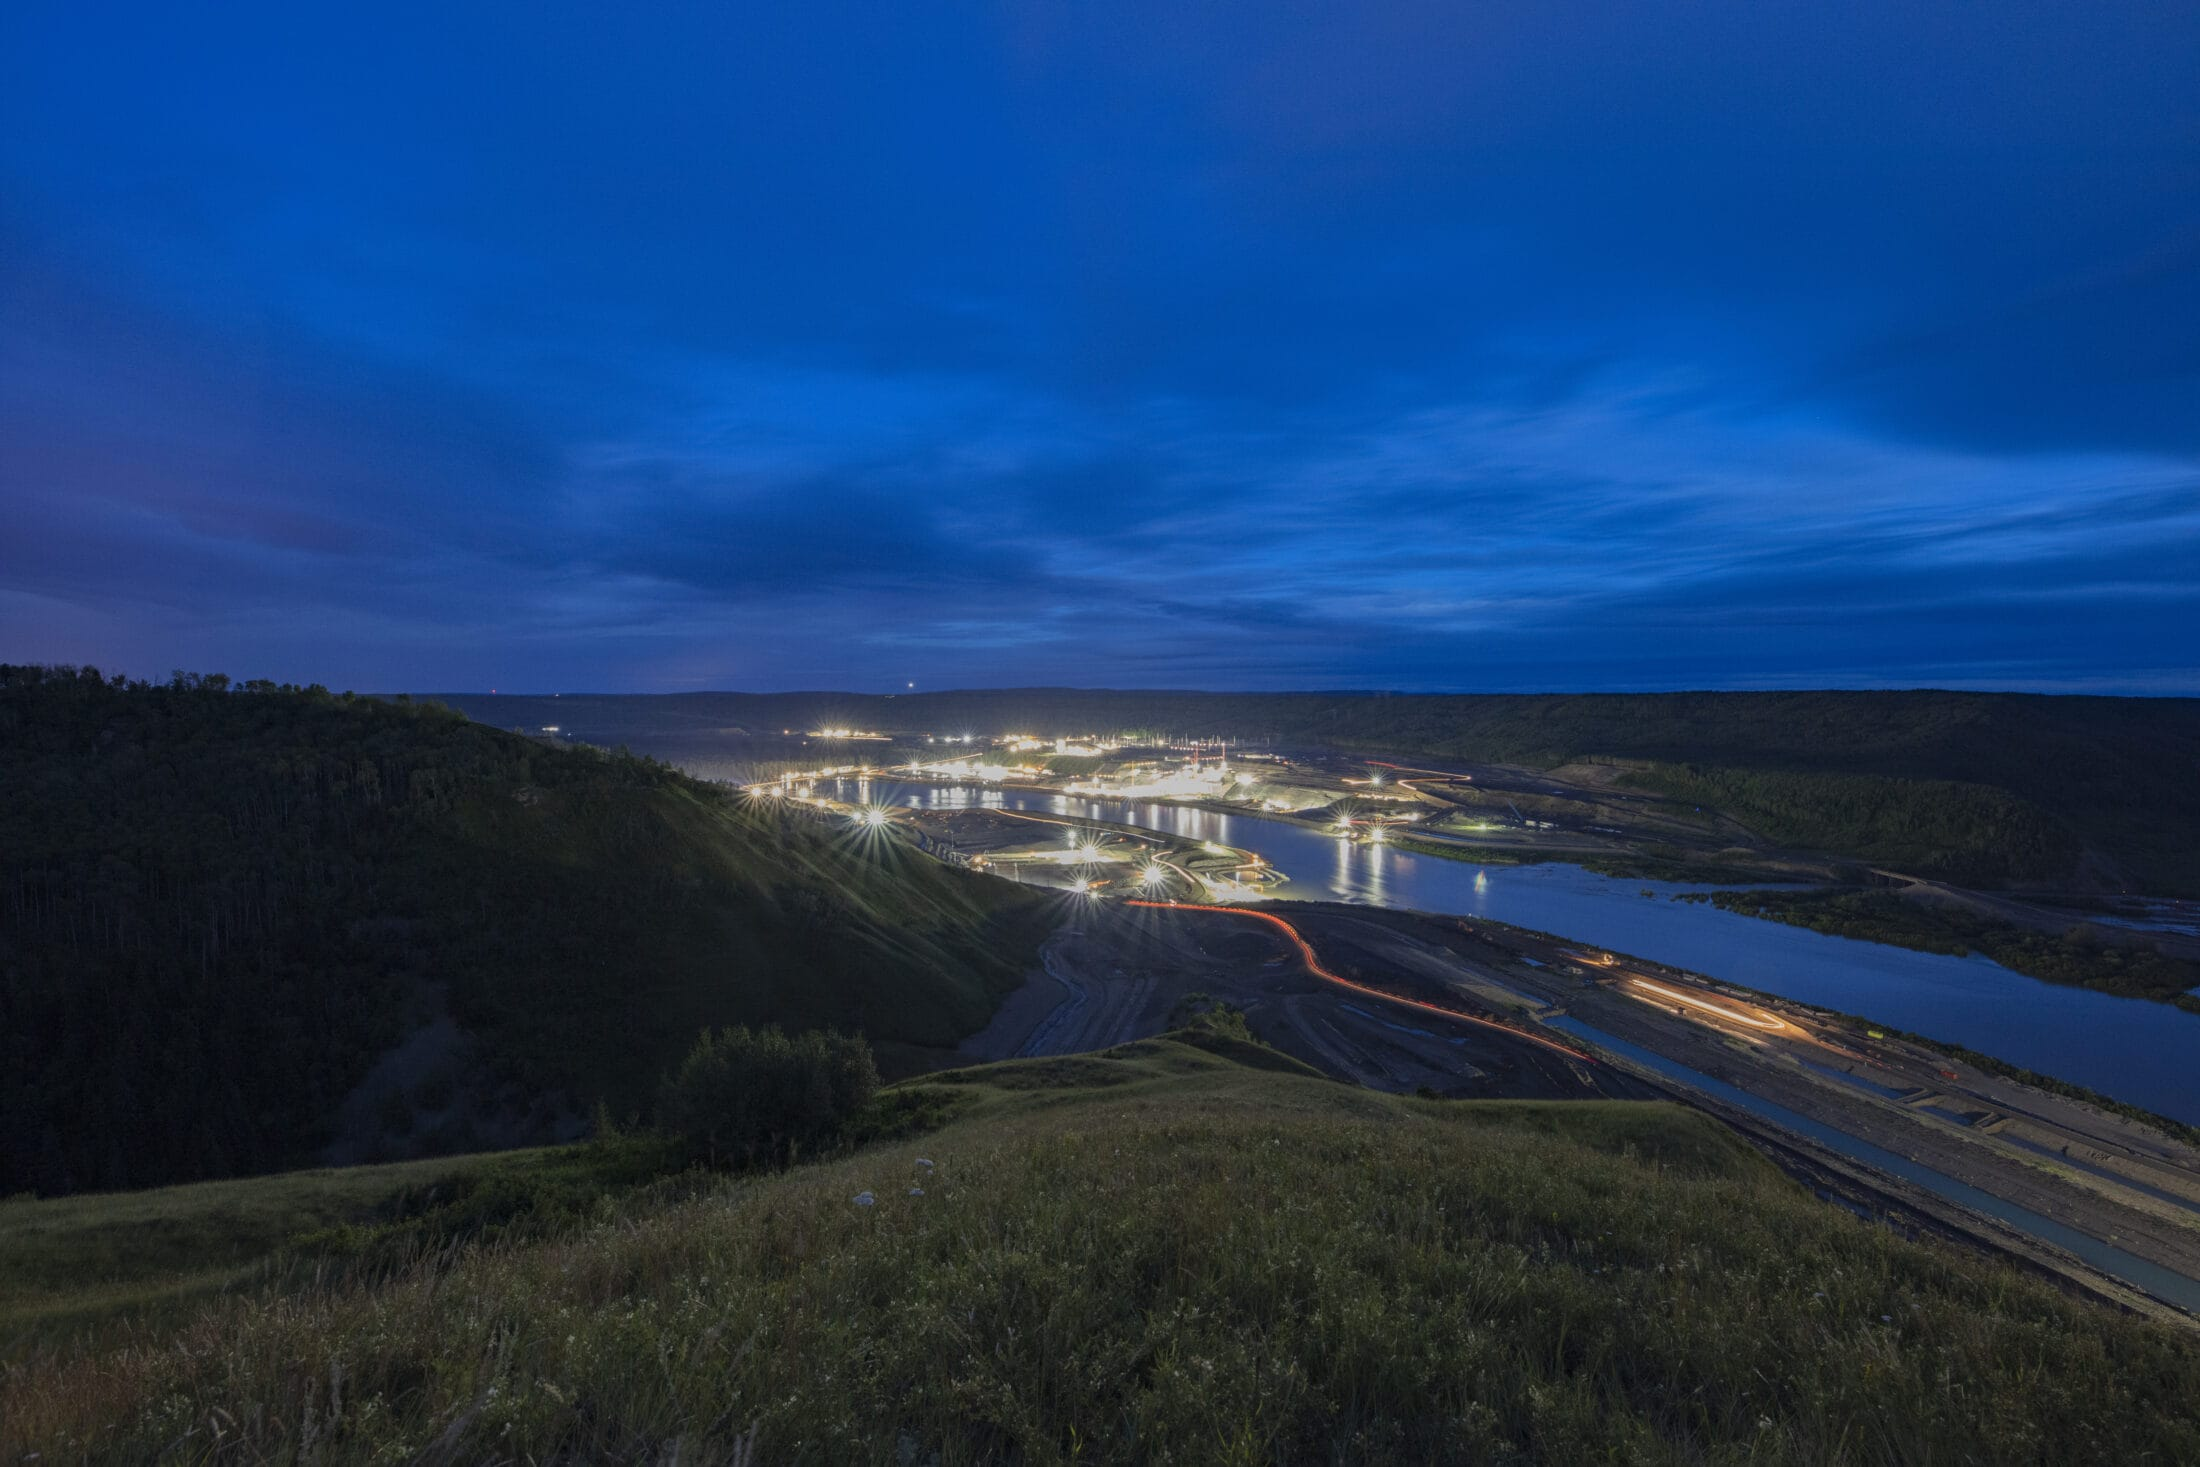 Site C dam The Narwhal Byron Dueck